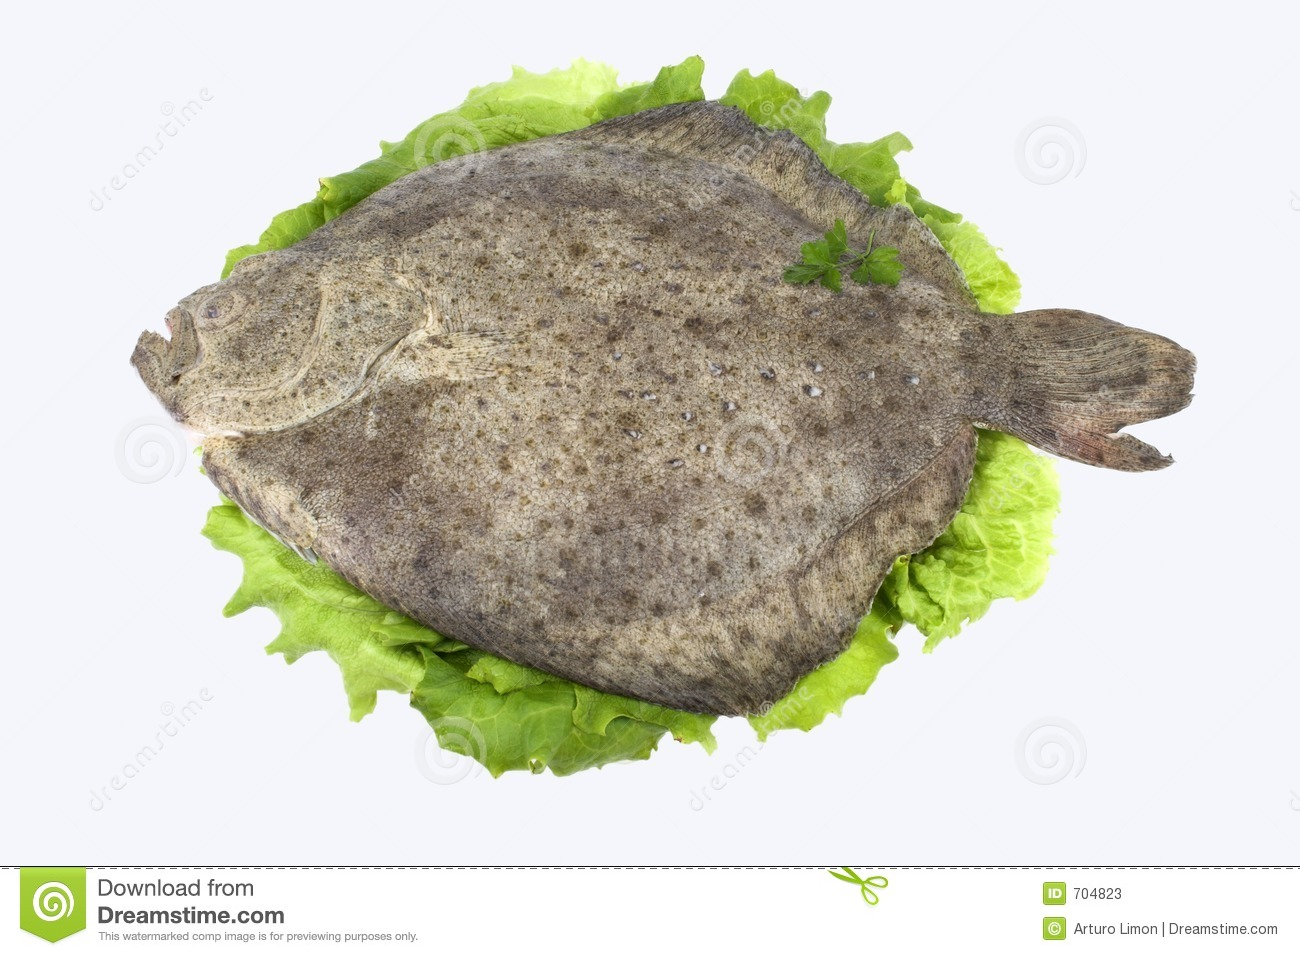 Turbot fish stock photos image 704823 for Turbot fish price